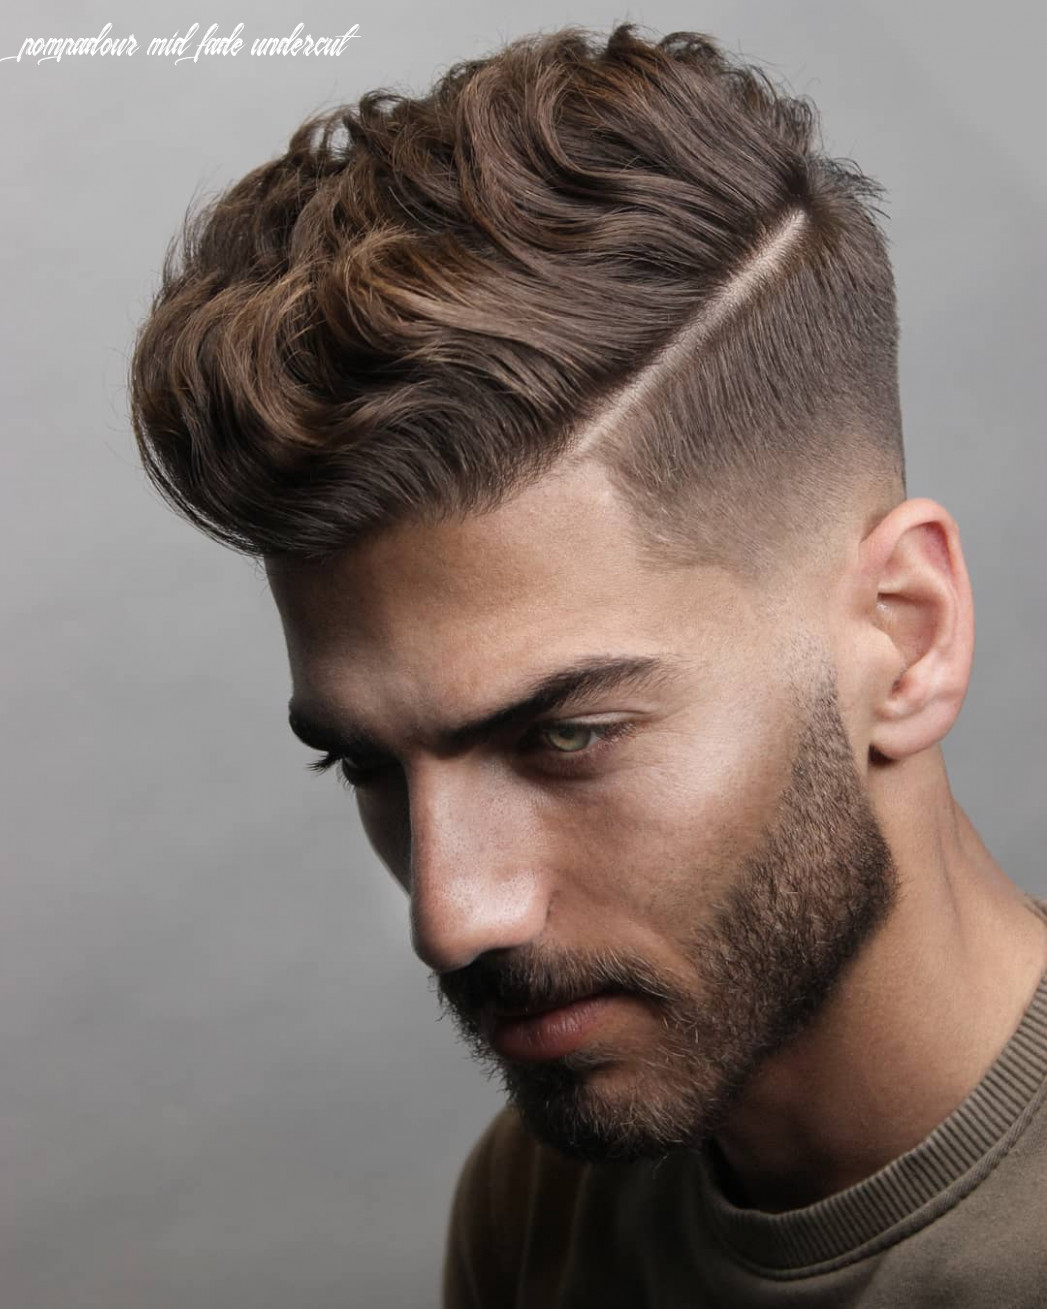 12 short on sides long on top haircuts for men | man haircuts pompadour mid fade undercut